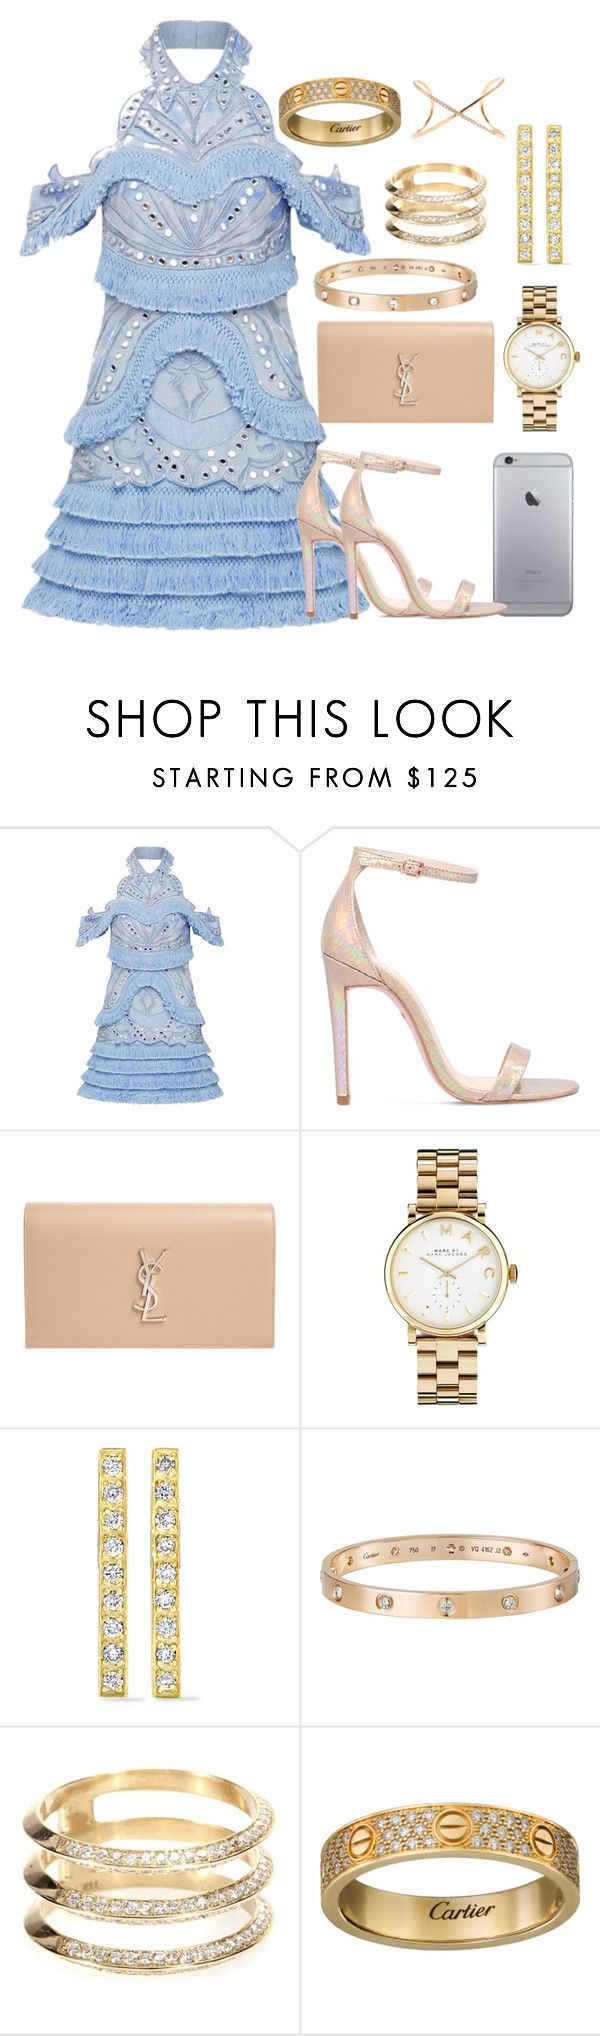 """Diamonds are a girls bestfriend💎"" by itspxulineee ❤ liked on Polyvore featuring Thurley, Carvela, Yves Saint Laurent, Marc by Marc Jacobs, Jennifer Meyer Jewelry, Cartier, Ileana Makri and Roberto Marroni"